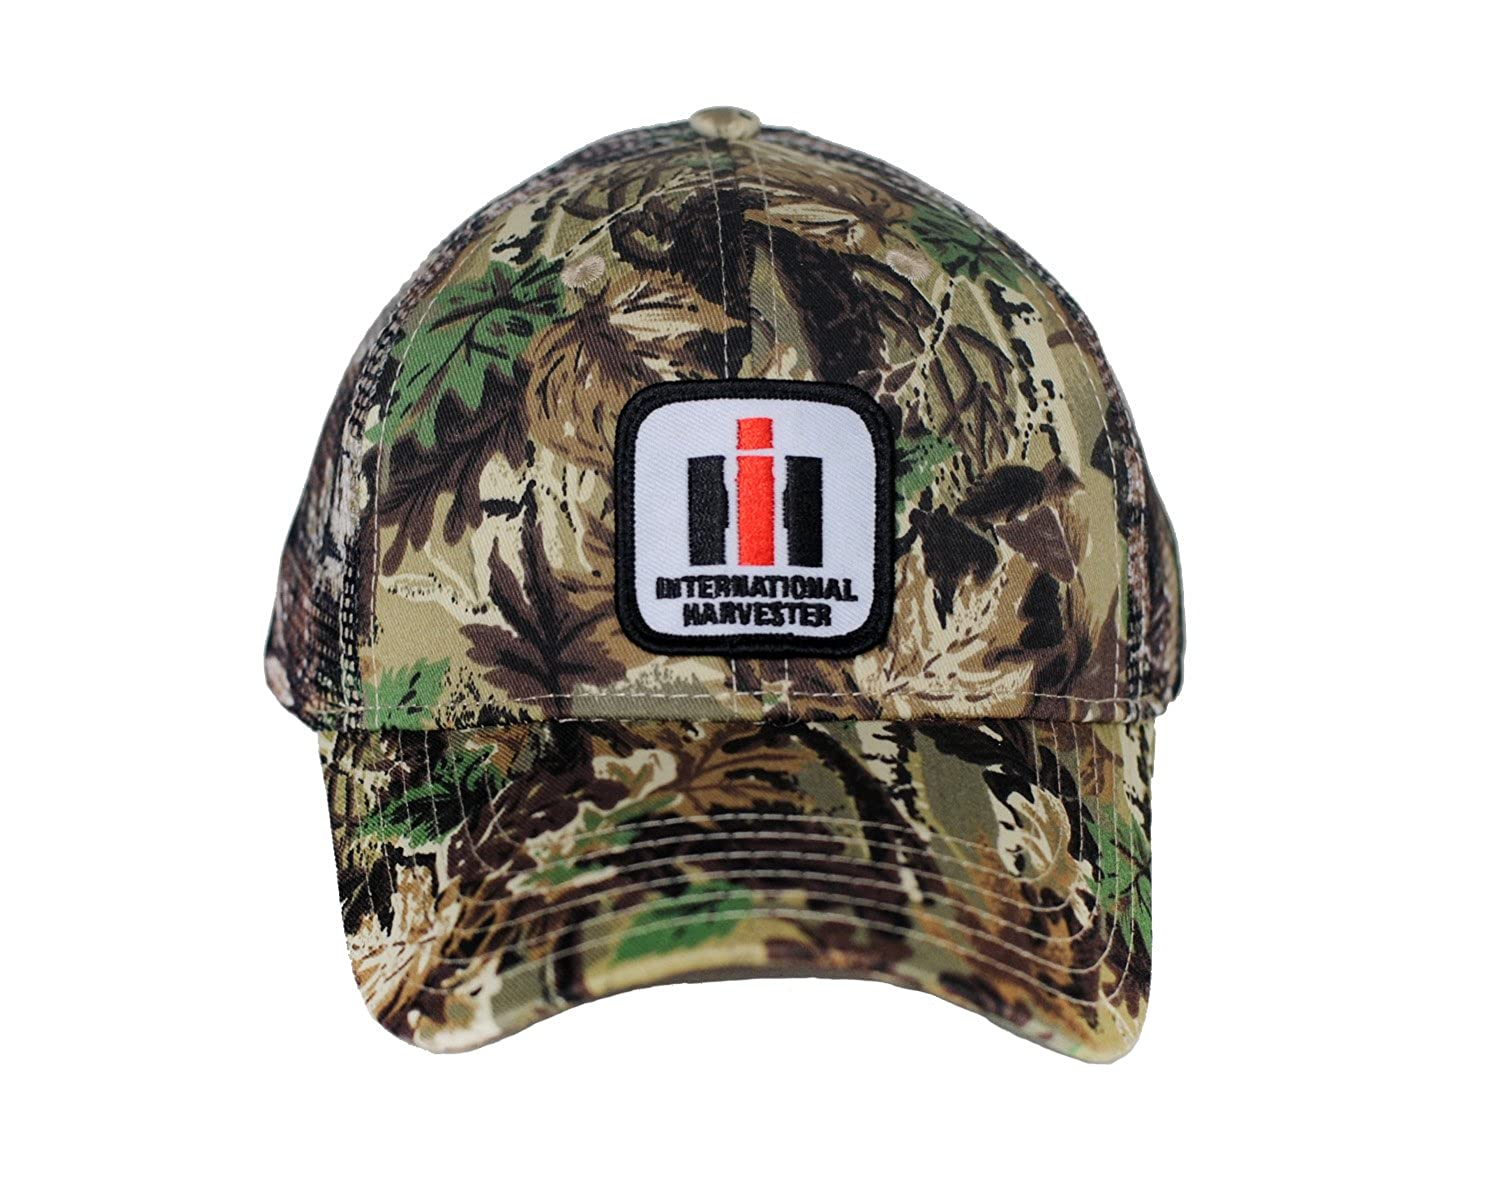 6772772a J&D Productions International Harvester IH Logo Hat, Camouflage Mesh at  Amazon Men's Clothing store: